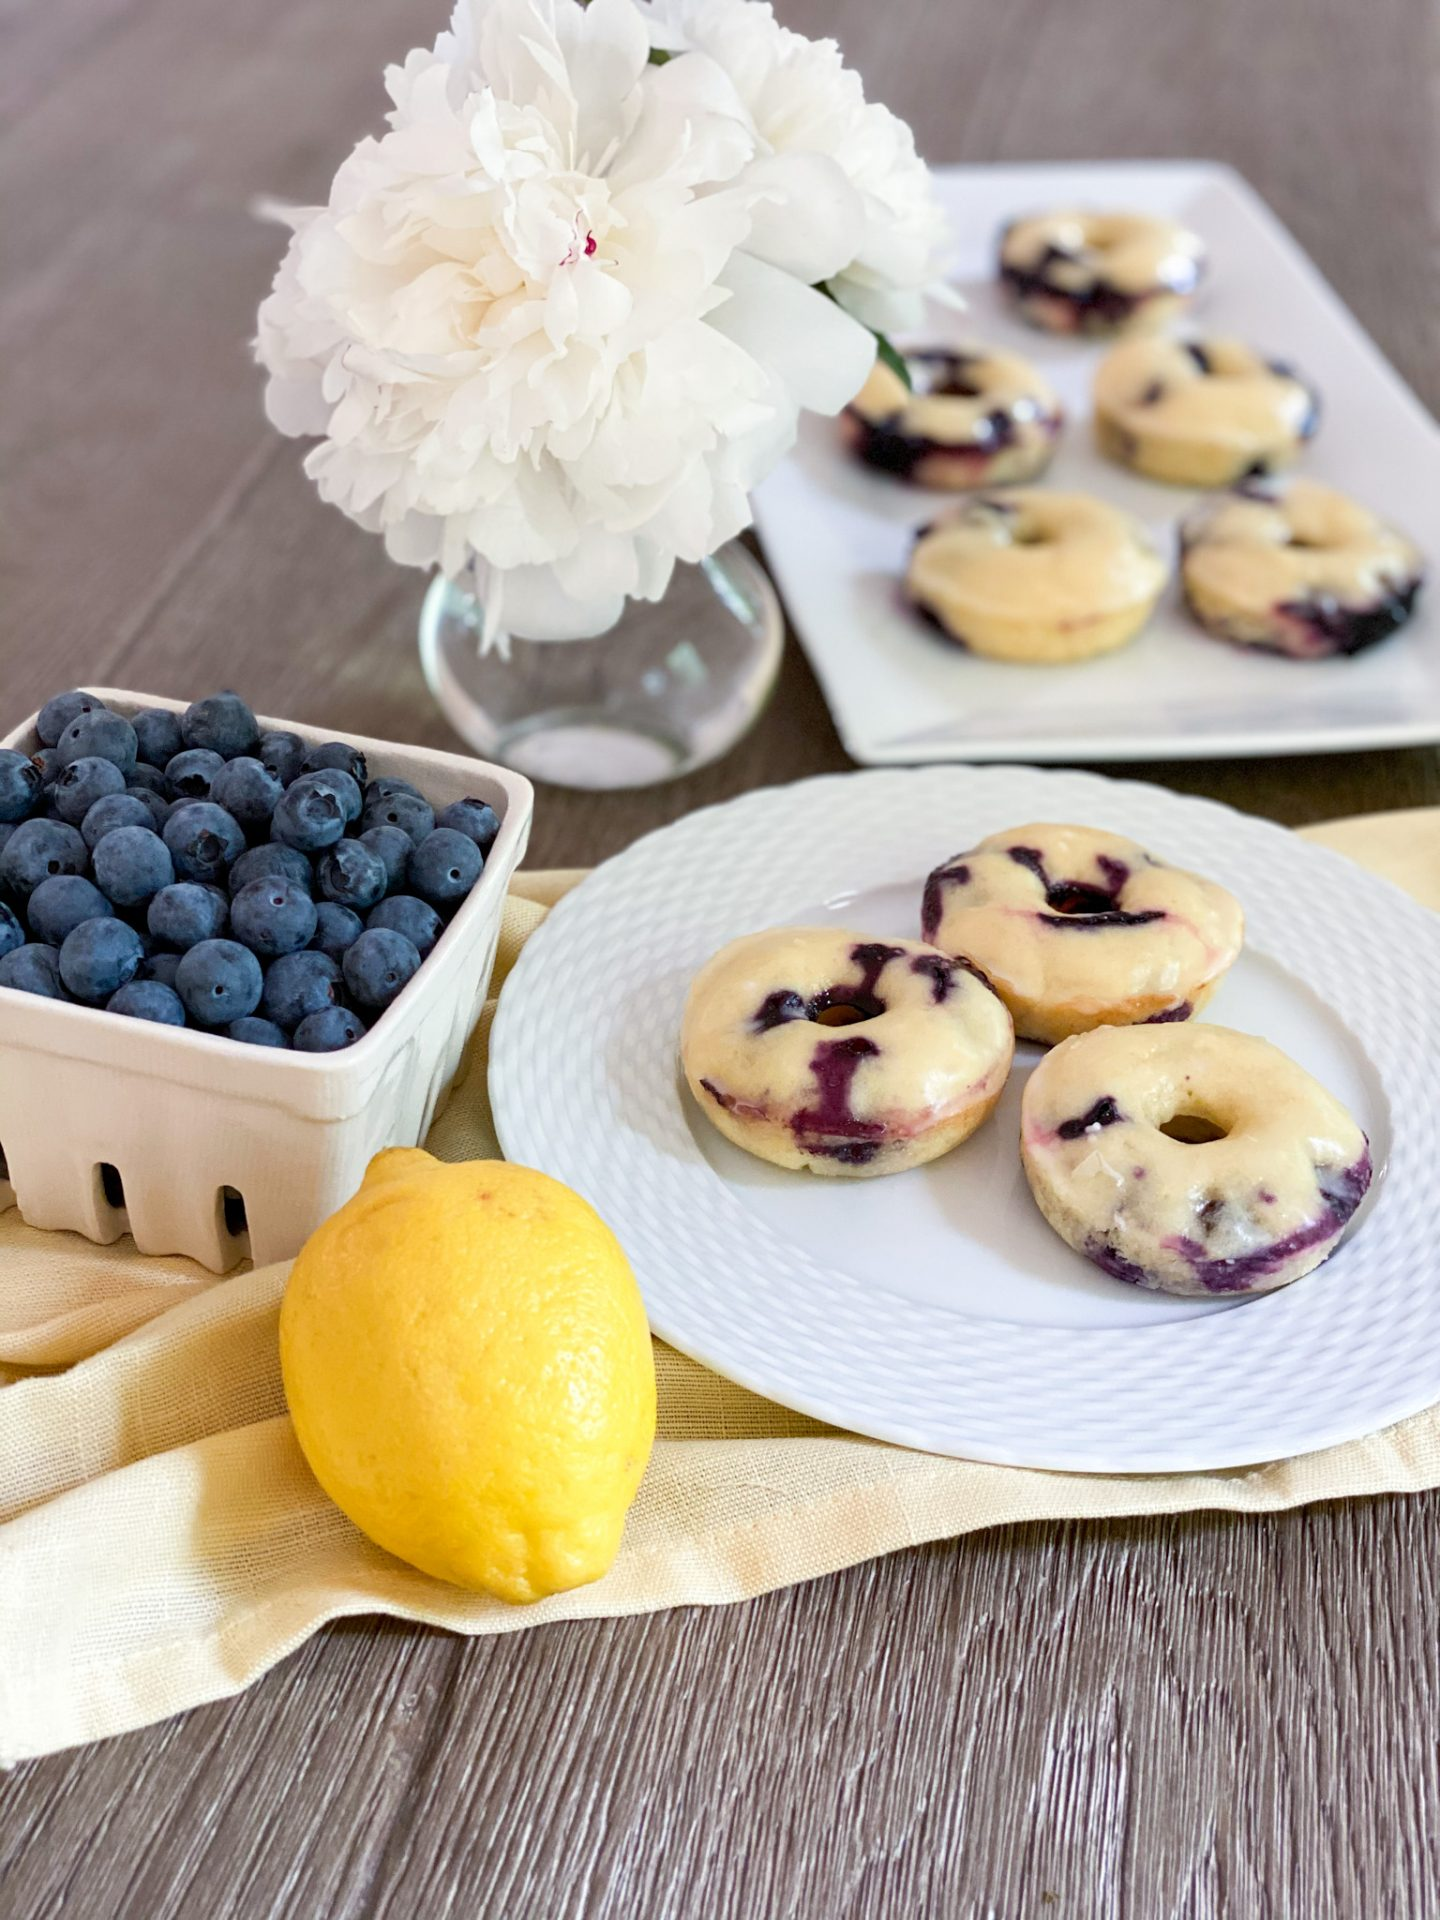 Lemon Blueberry Glazed Doughnuts